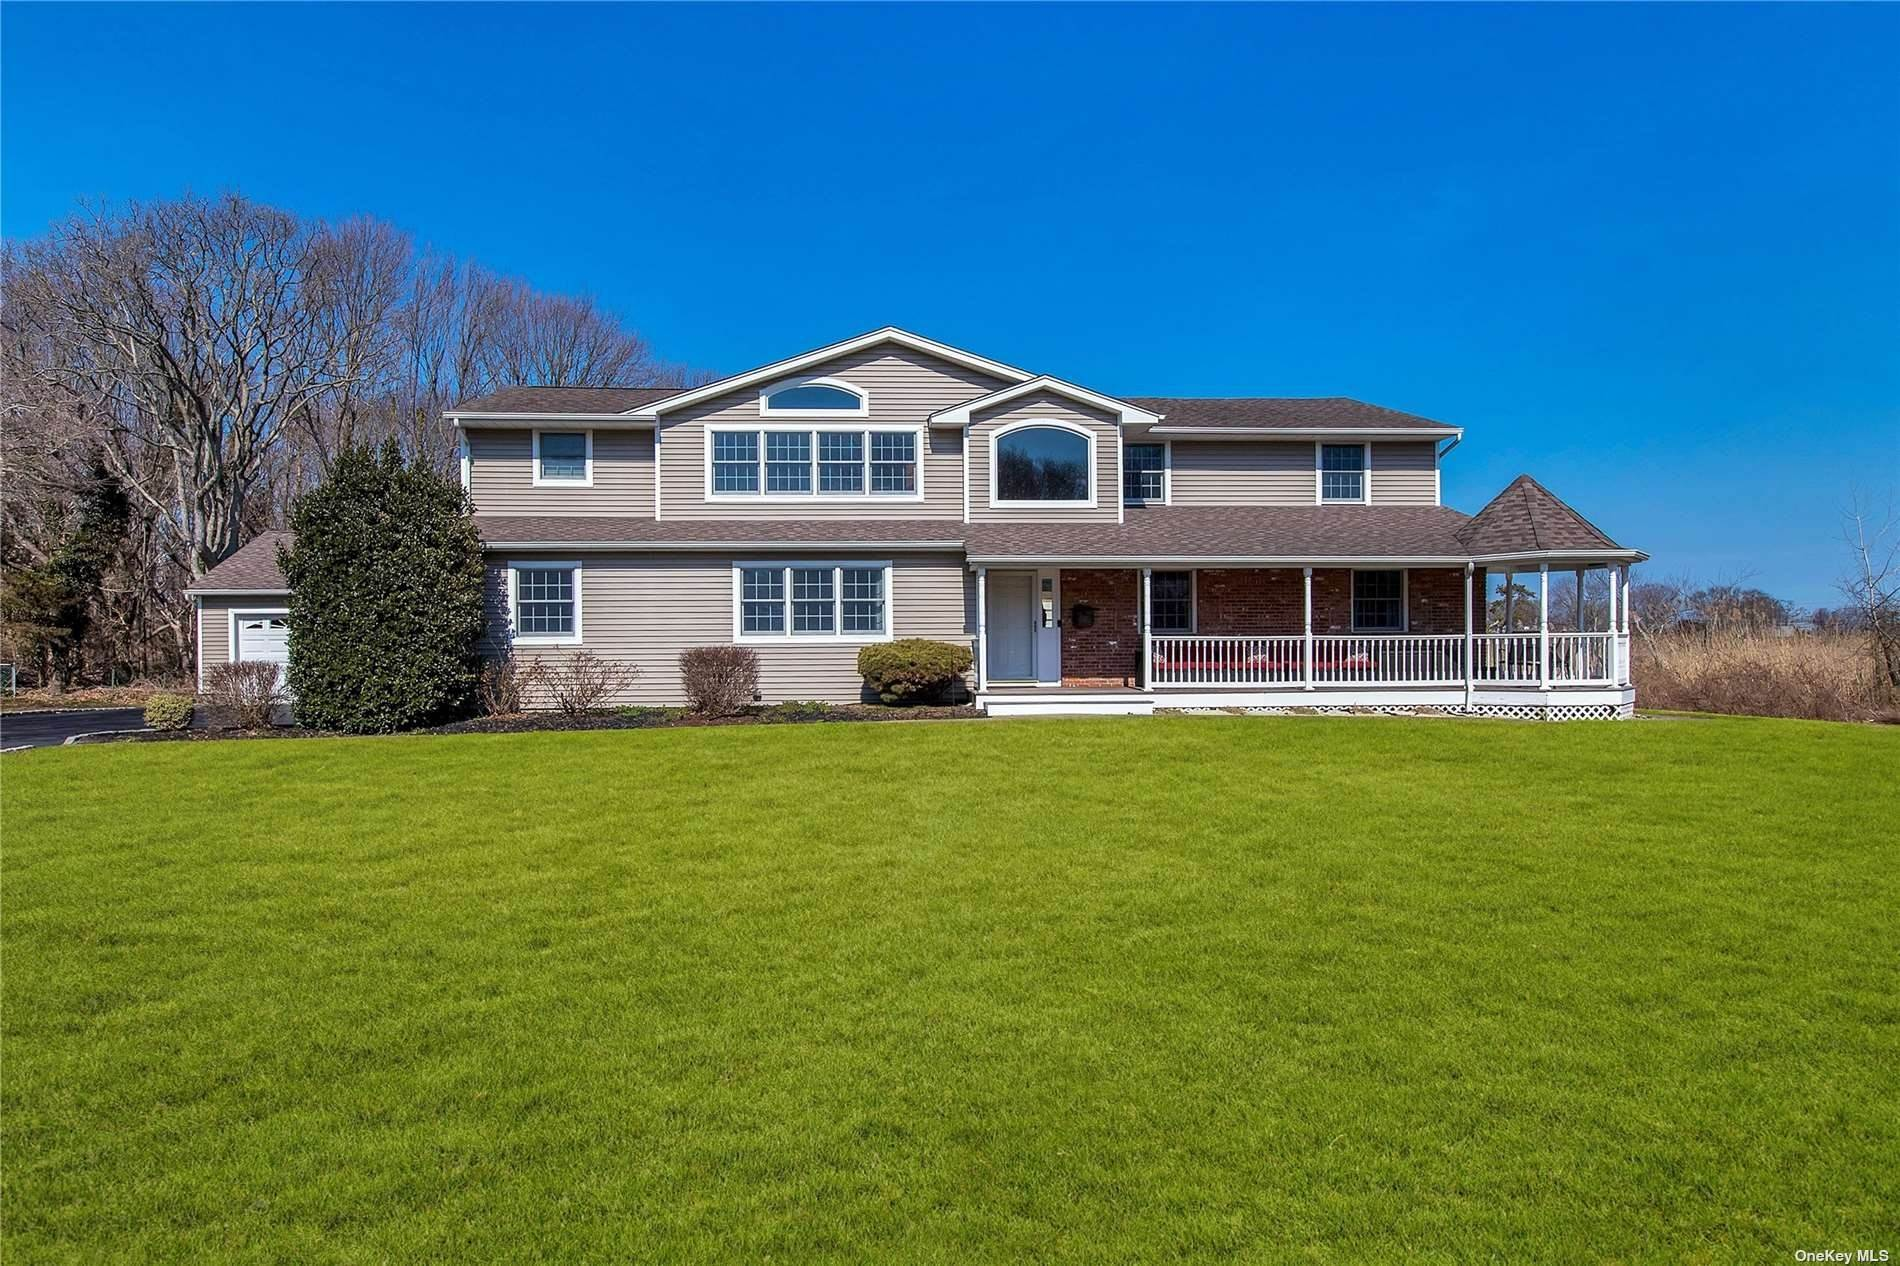 Residential for Sale at 15 Cedar Bay Court Bayport, New York 11705 United States